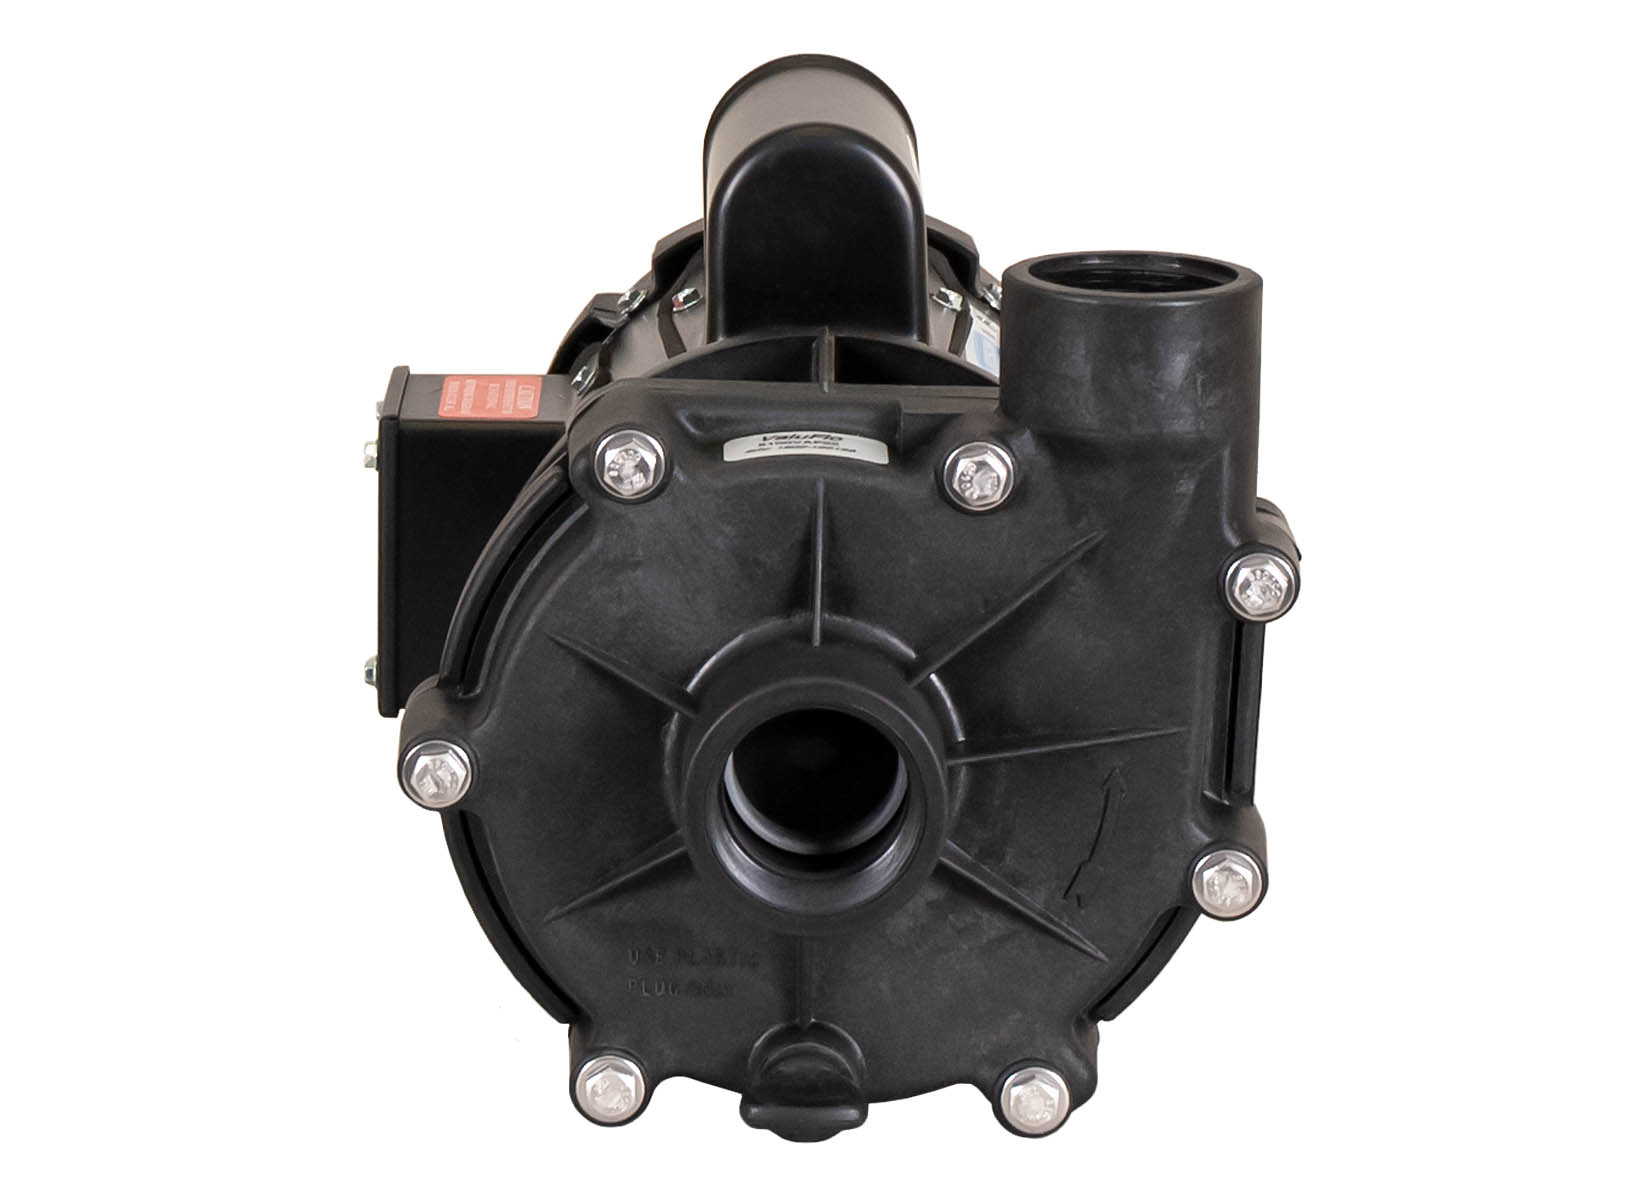 ValuFlo 1000 Pump with Leeson Motor front view